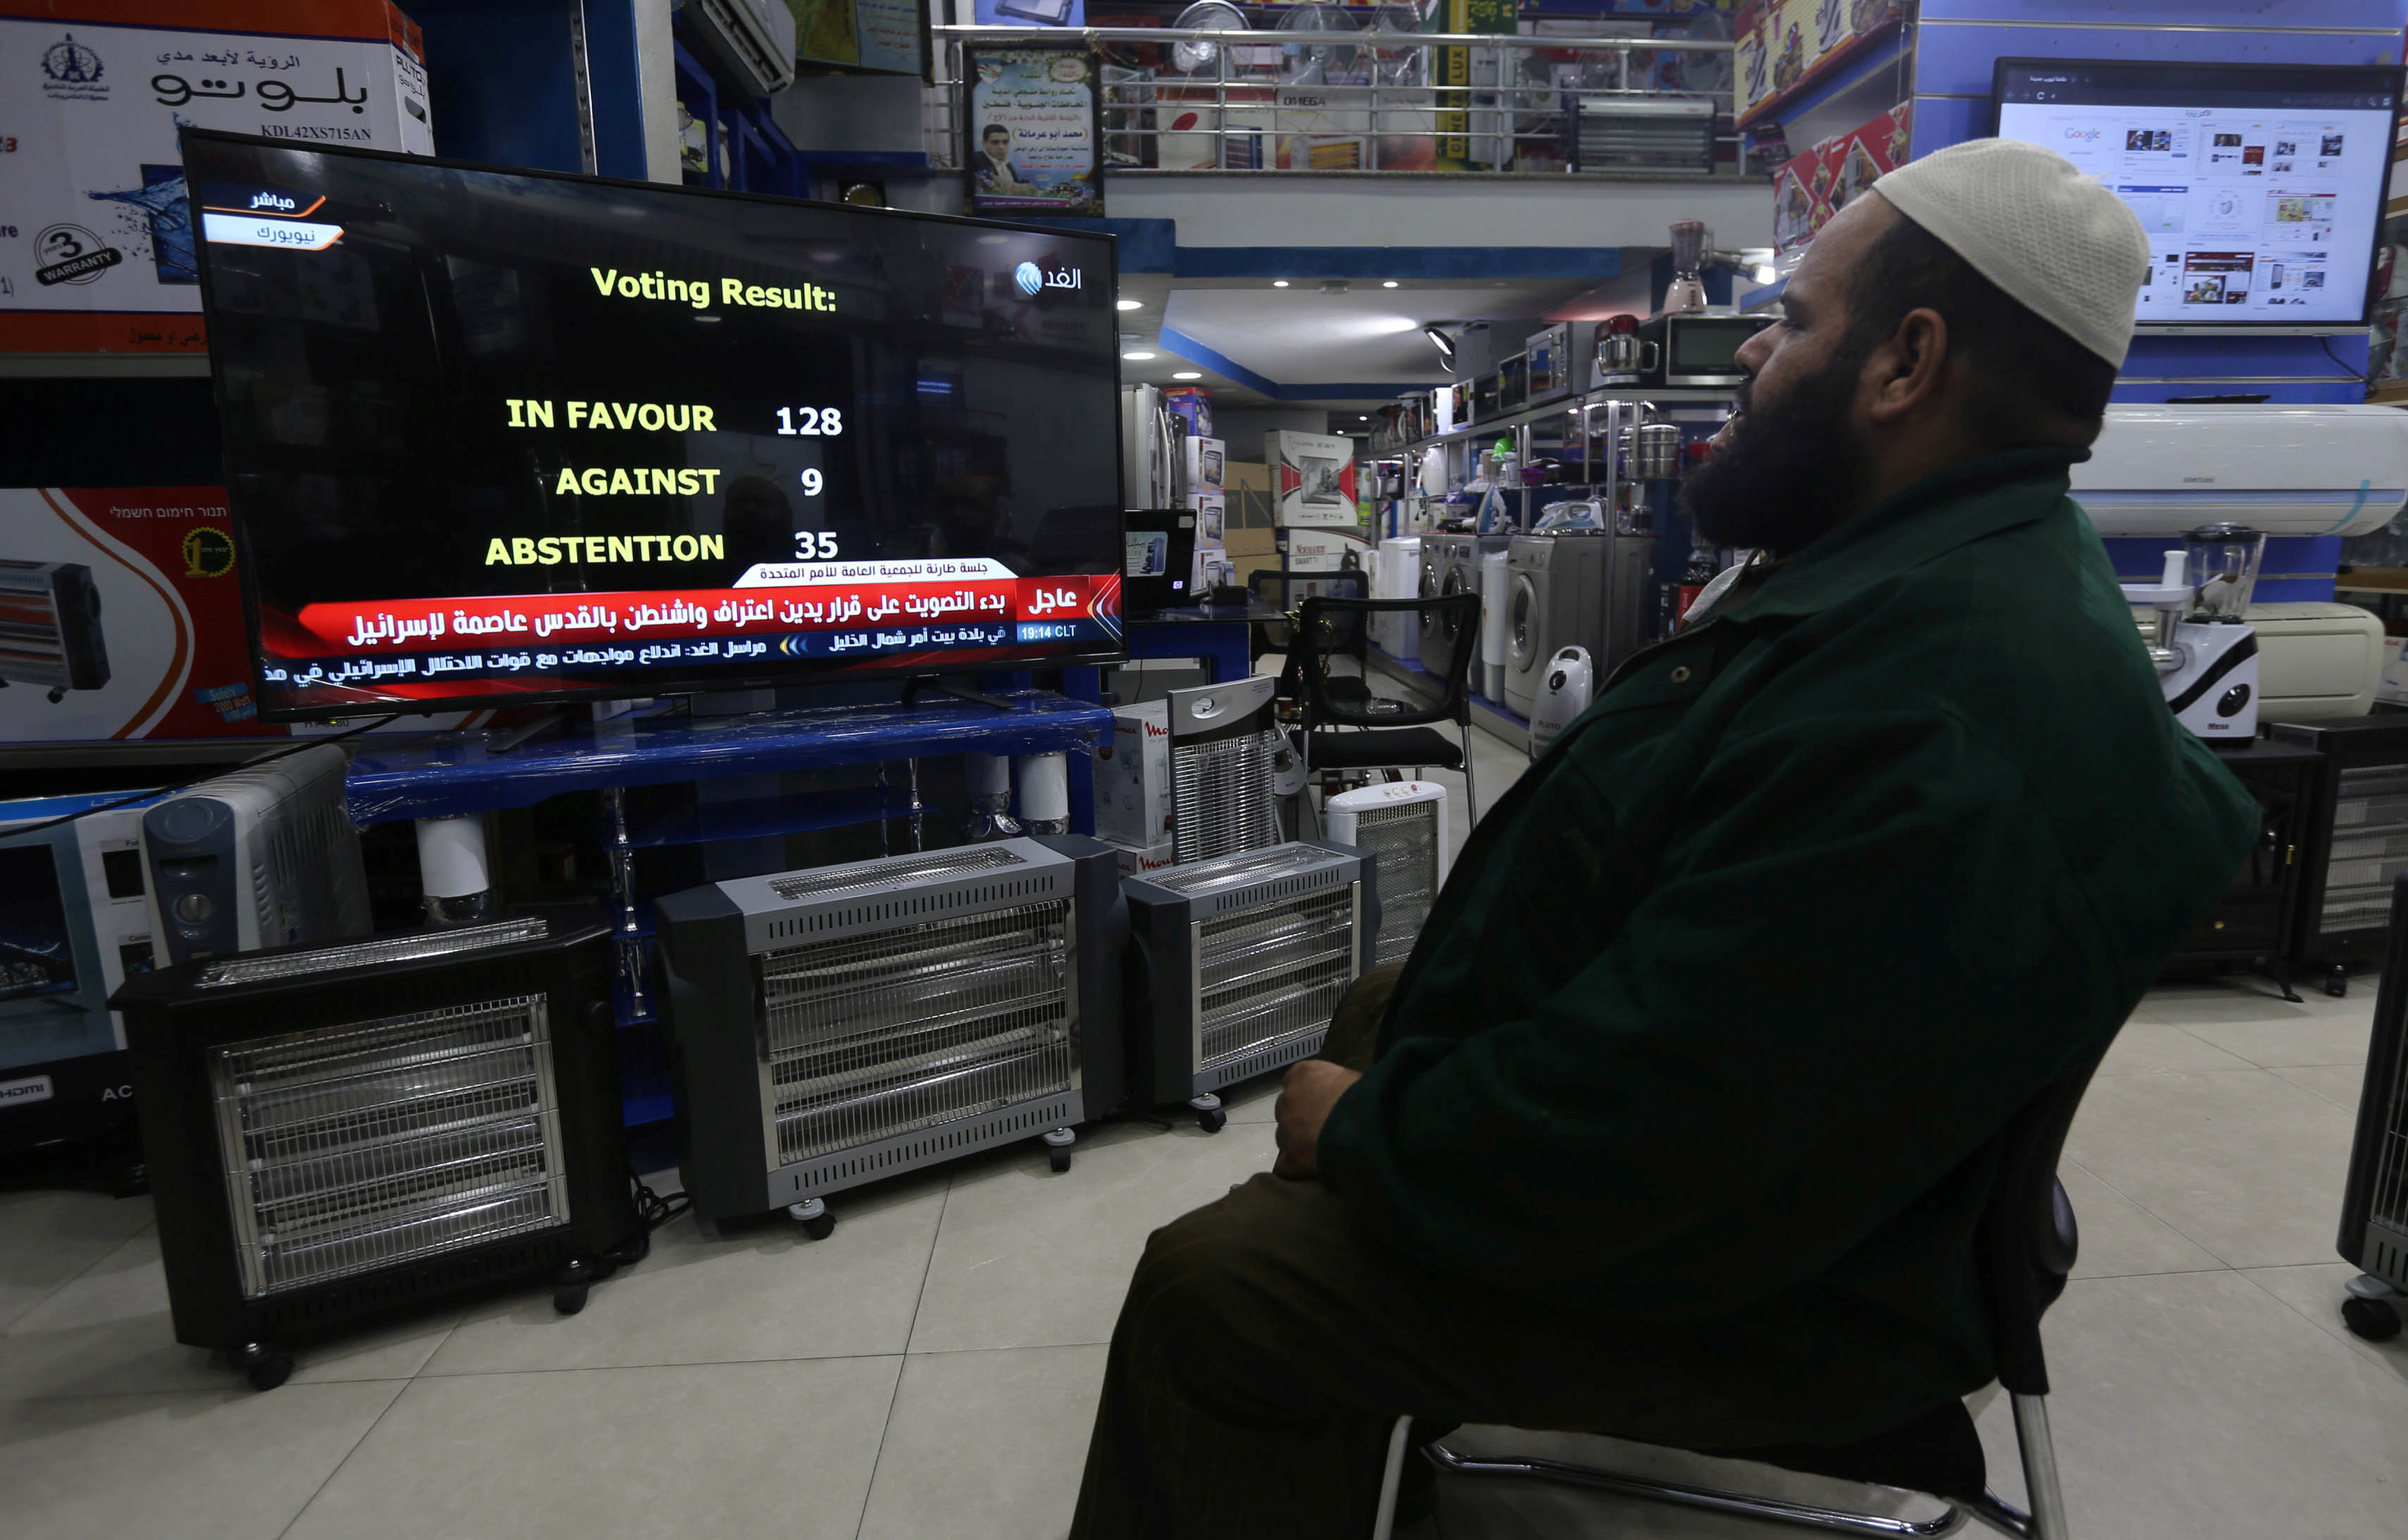 A Palestinian man watches a televised broadcast of the UN General Assembly vote on a draft resolution calling on the United States to withdraw its recognition of Jerusalem as Israel's capital, at an electrical appliances store in Rafah in the southern Gaza Strip December 21, 2017. Credit: Reuters/Ibraheem Abu Mustafa